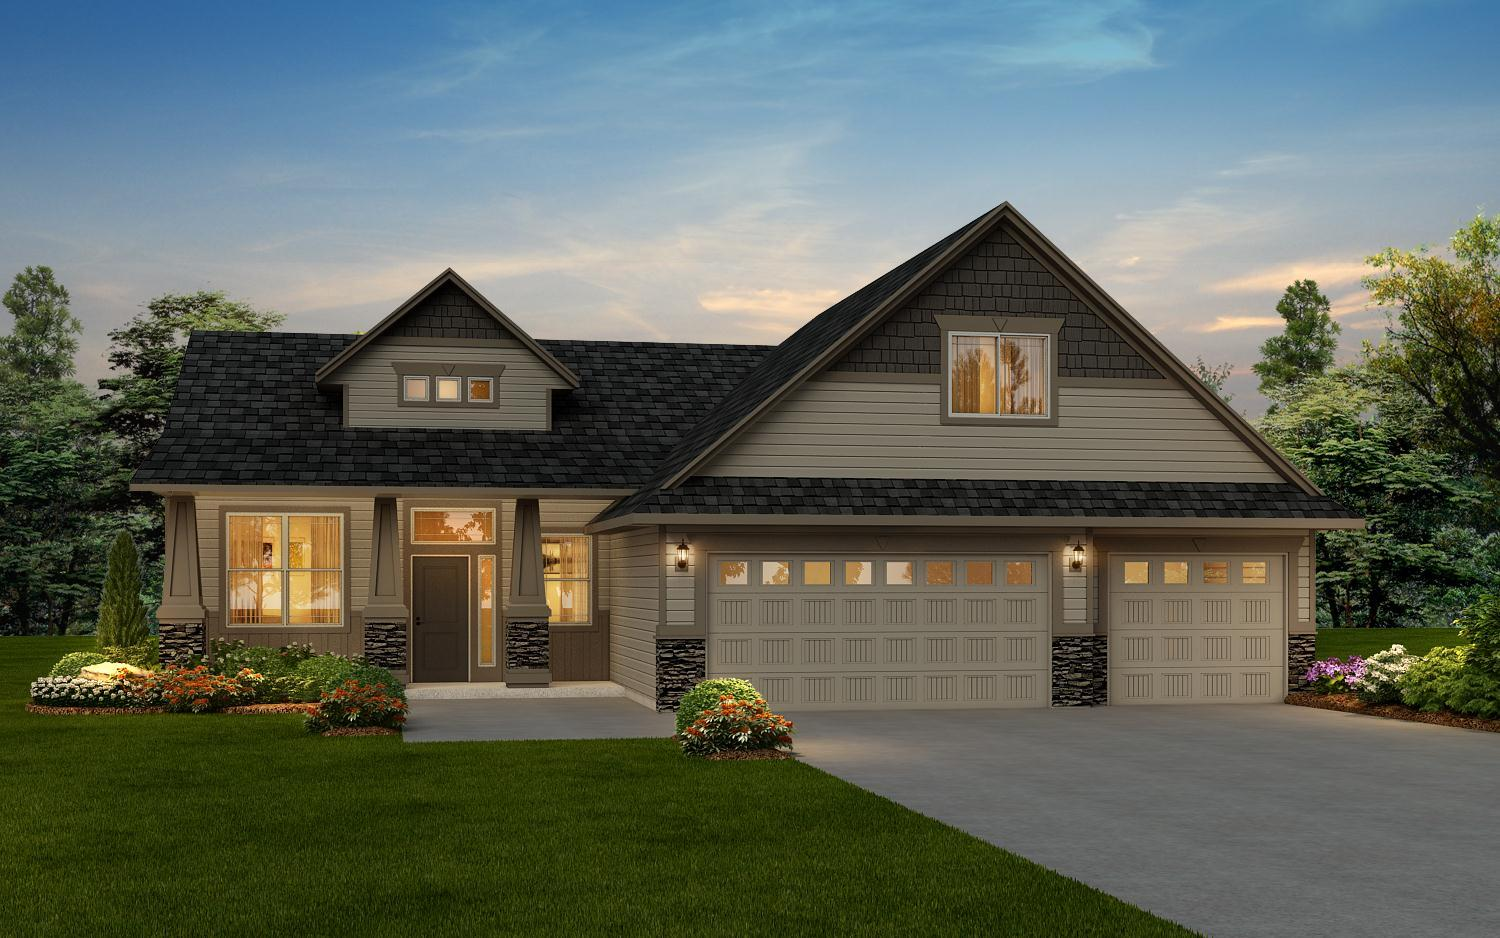 Exterior featured in The Homestead Bonus By RYN Built Homes in Richland, WA